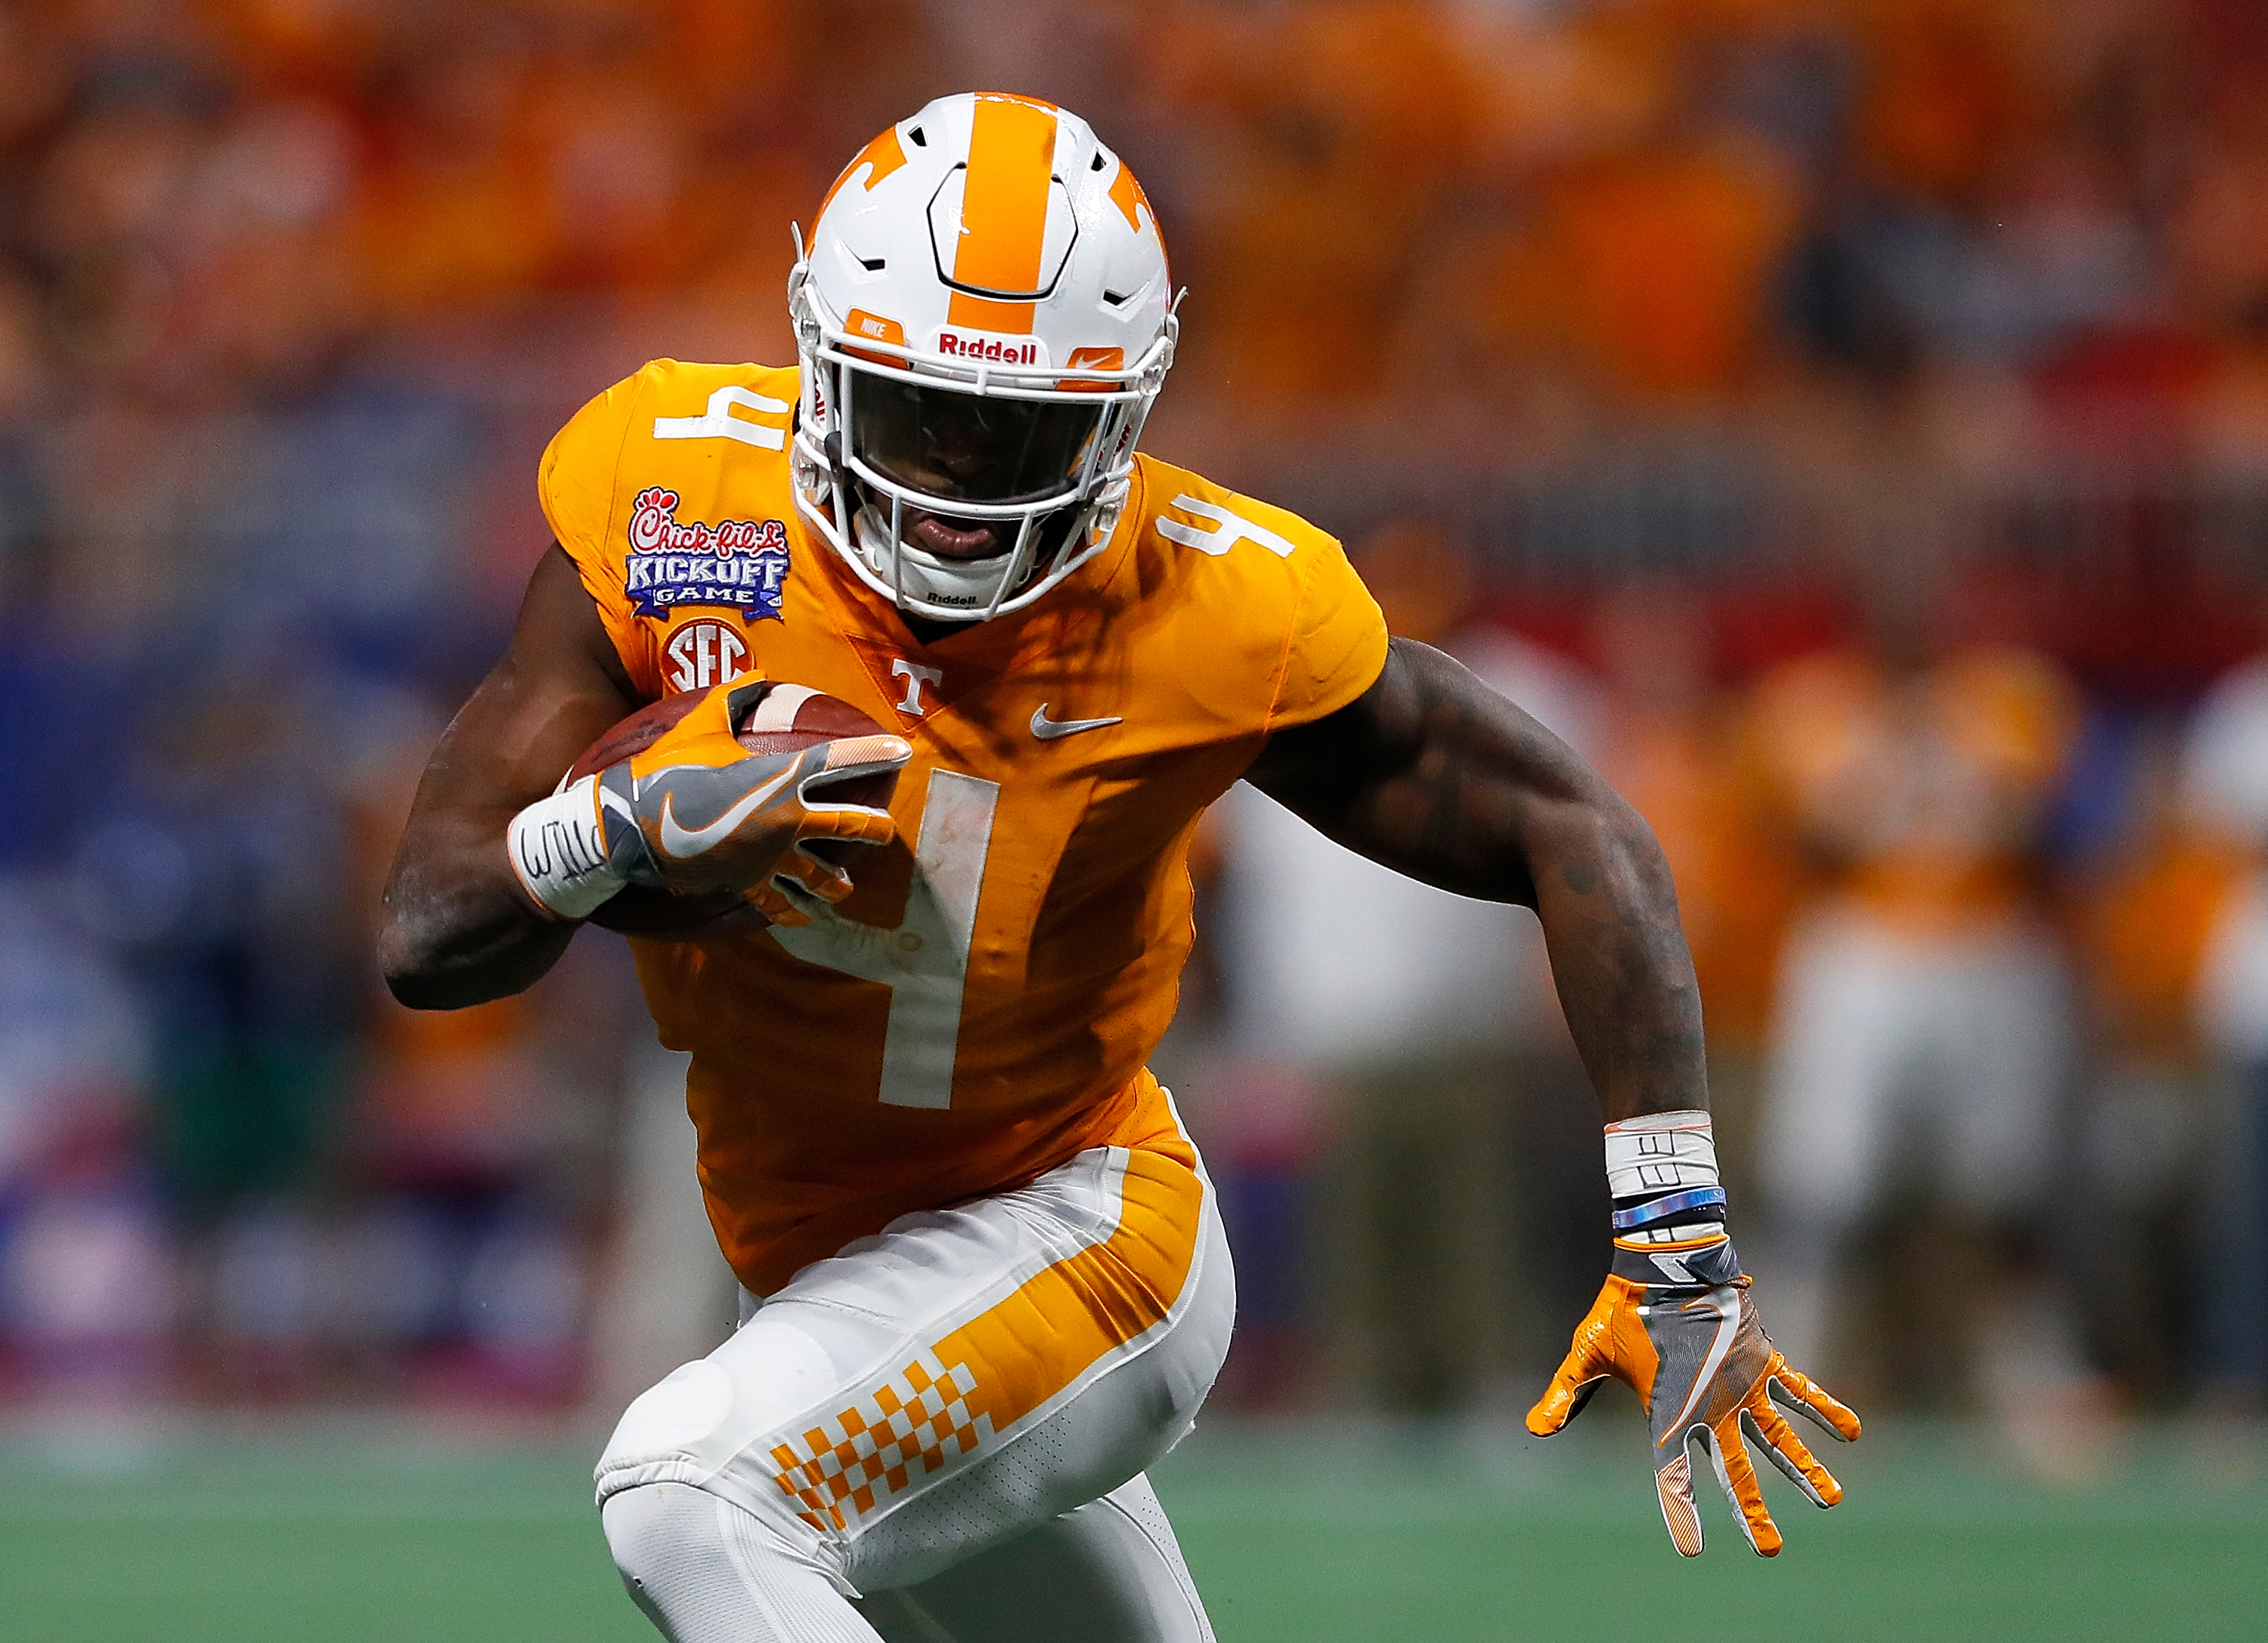 #25/21 Tennessee Vols beat Indiana State at home, 42-7